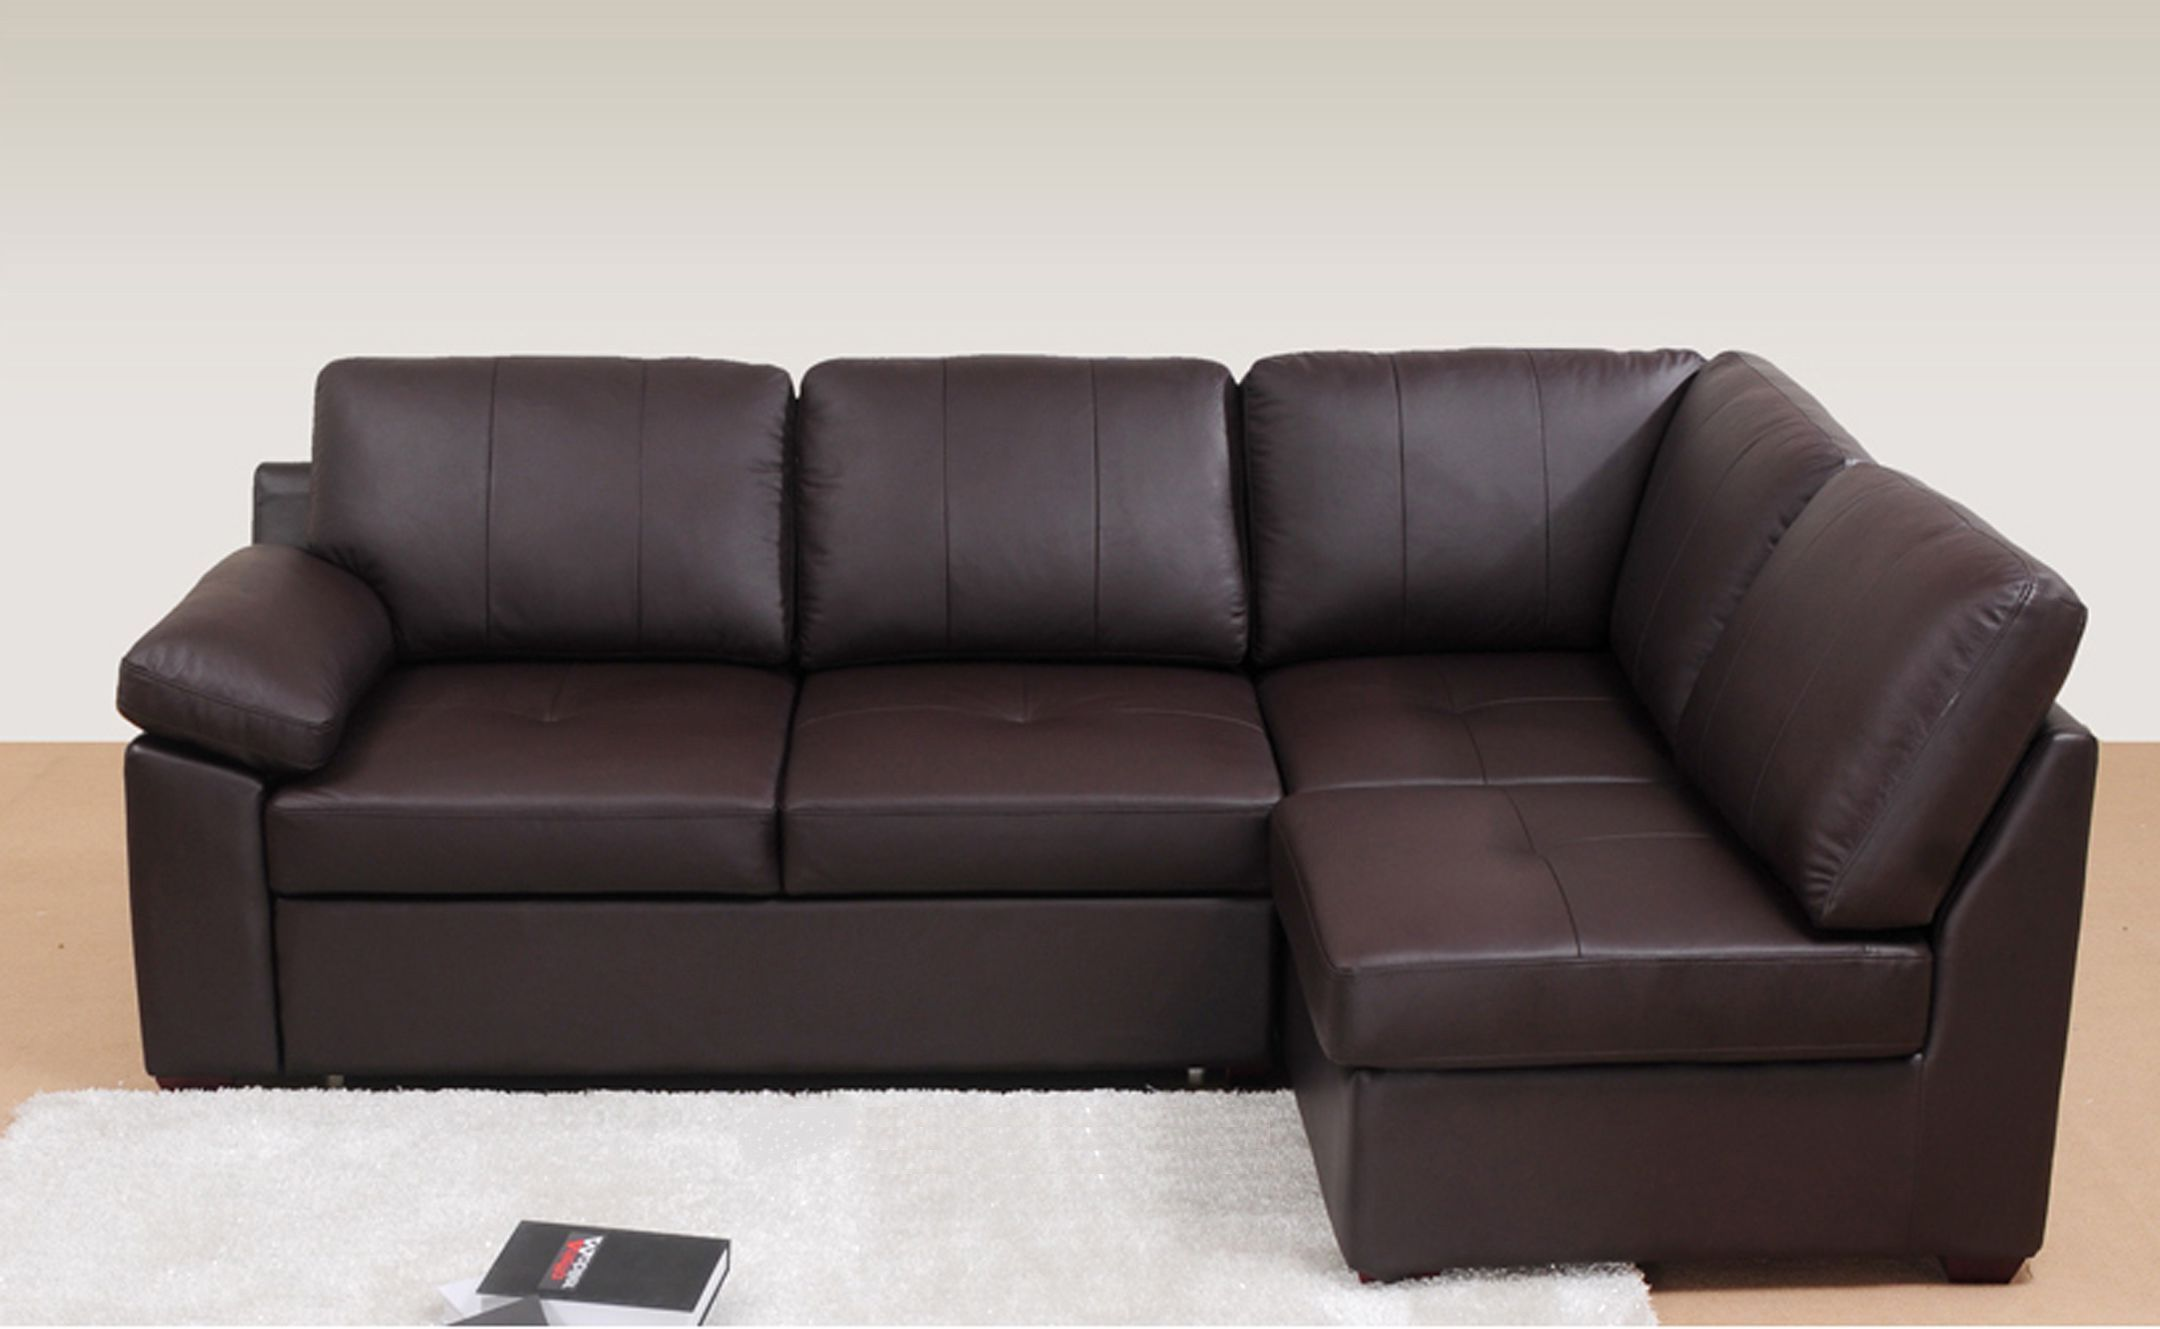 This beautiful leather Alonza corner sofa bed is available now from ...